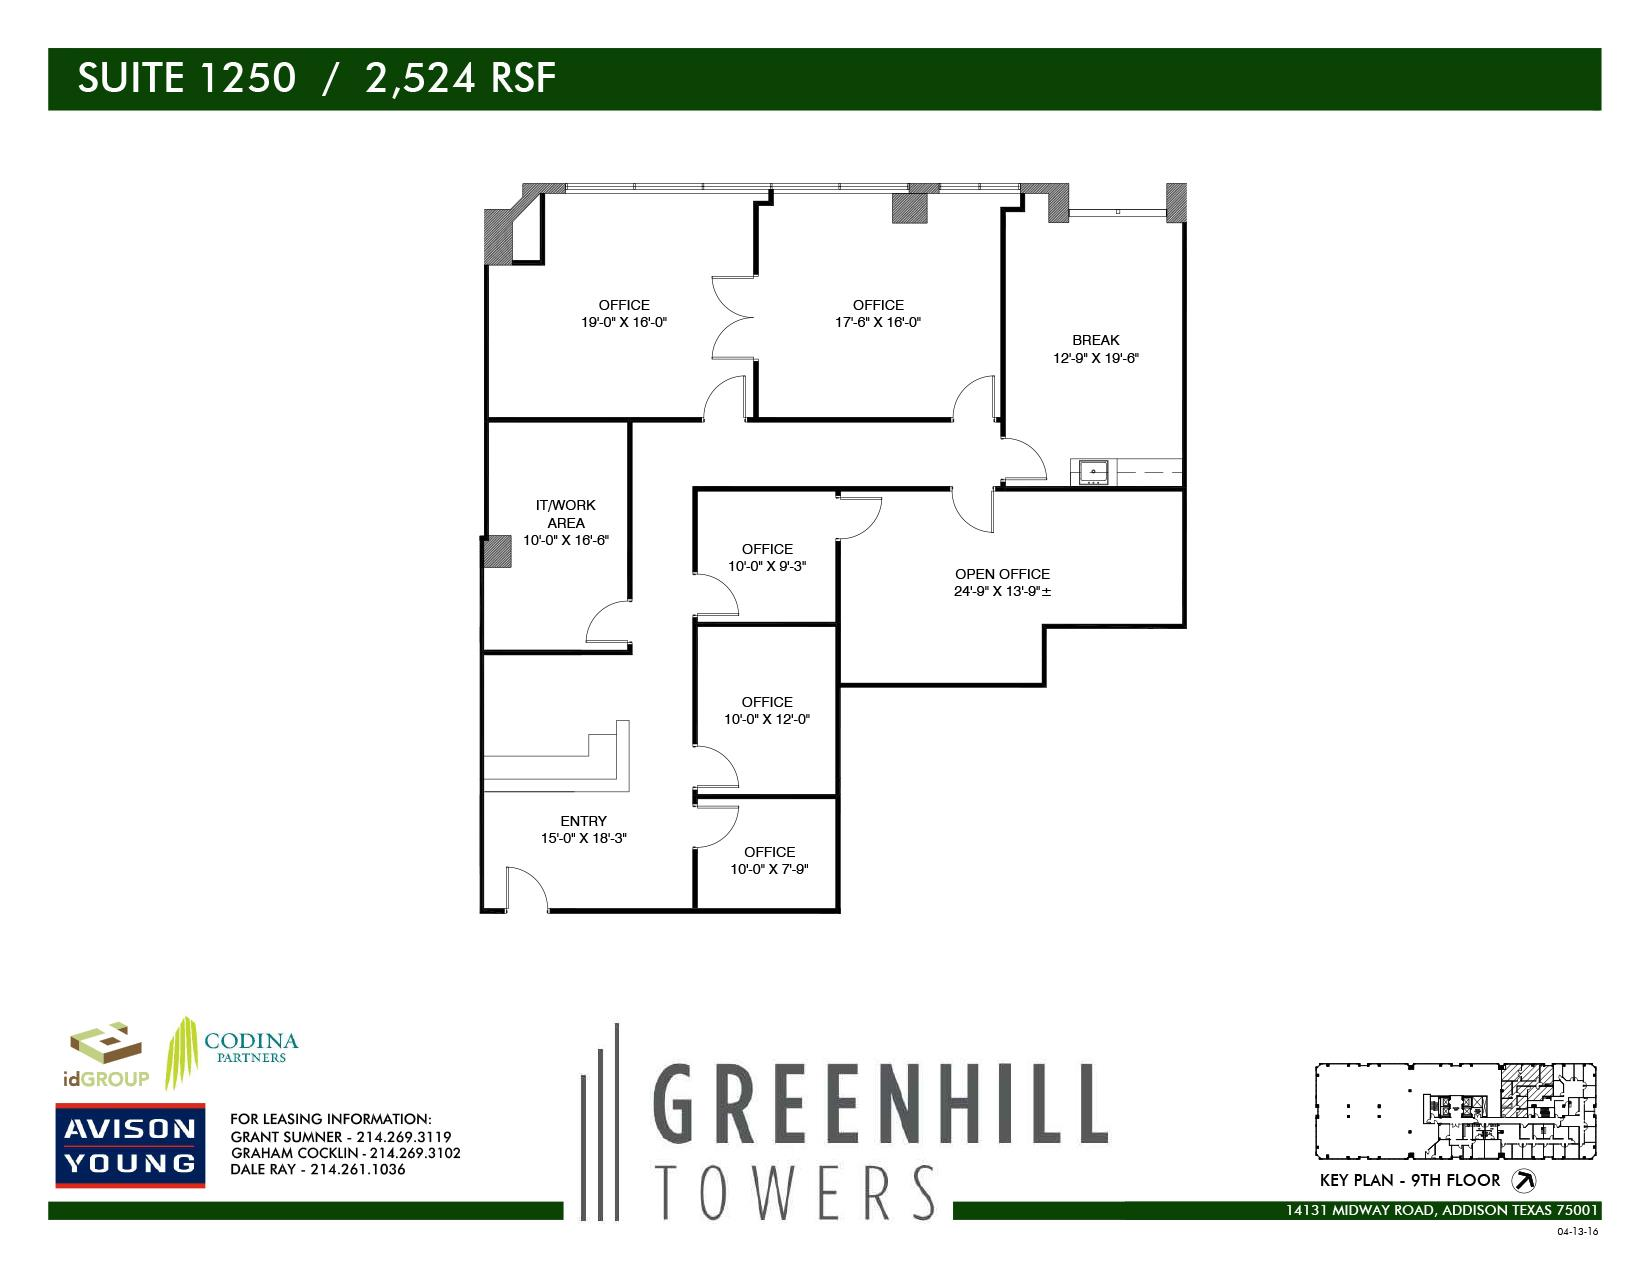 Codina Partners | Greenhill Towers - Suite 1250